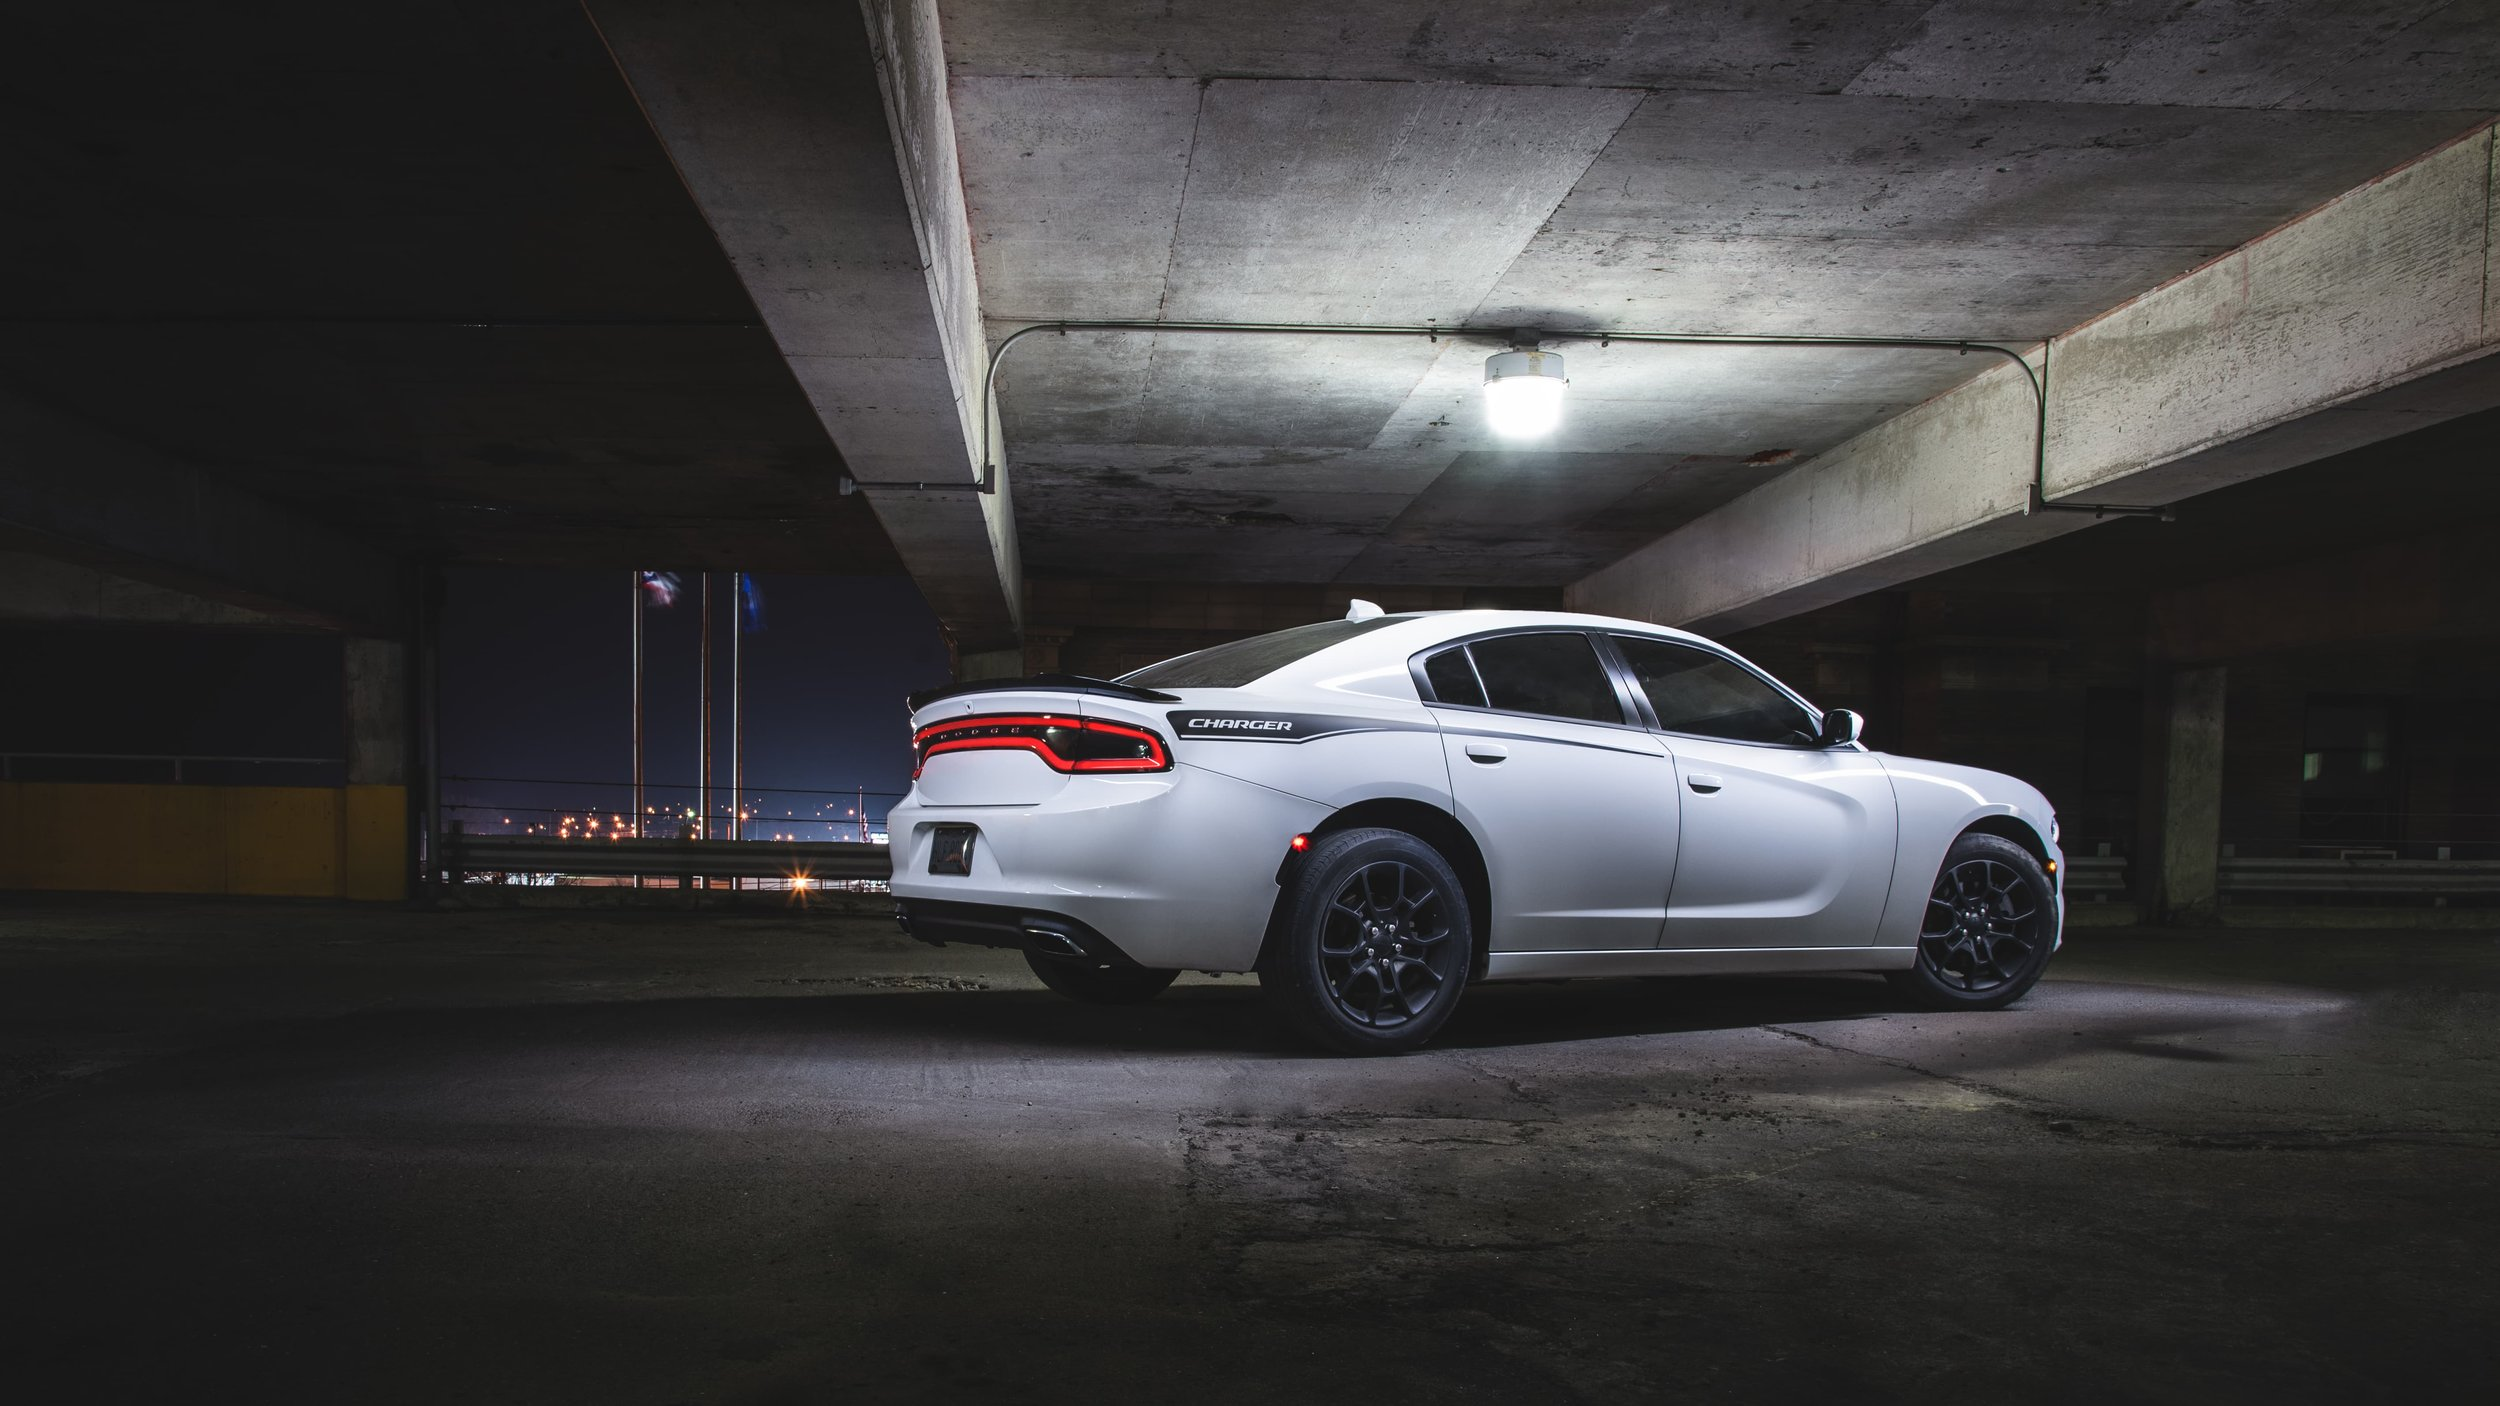 Rose_S_Charger_3-3_0213.jpg